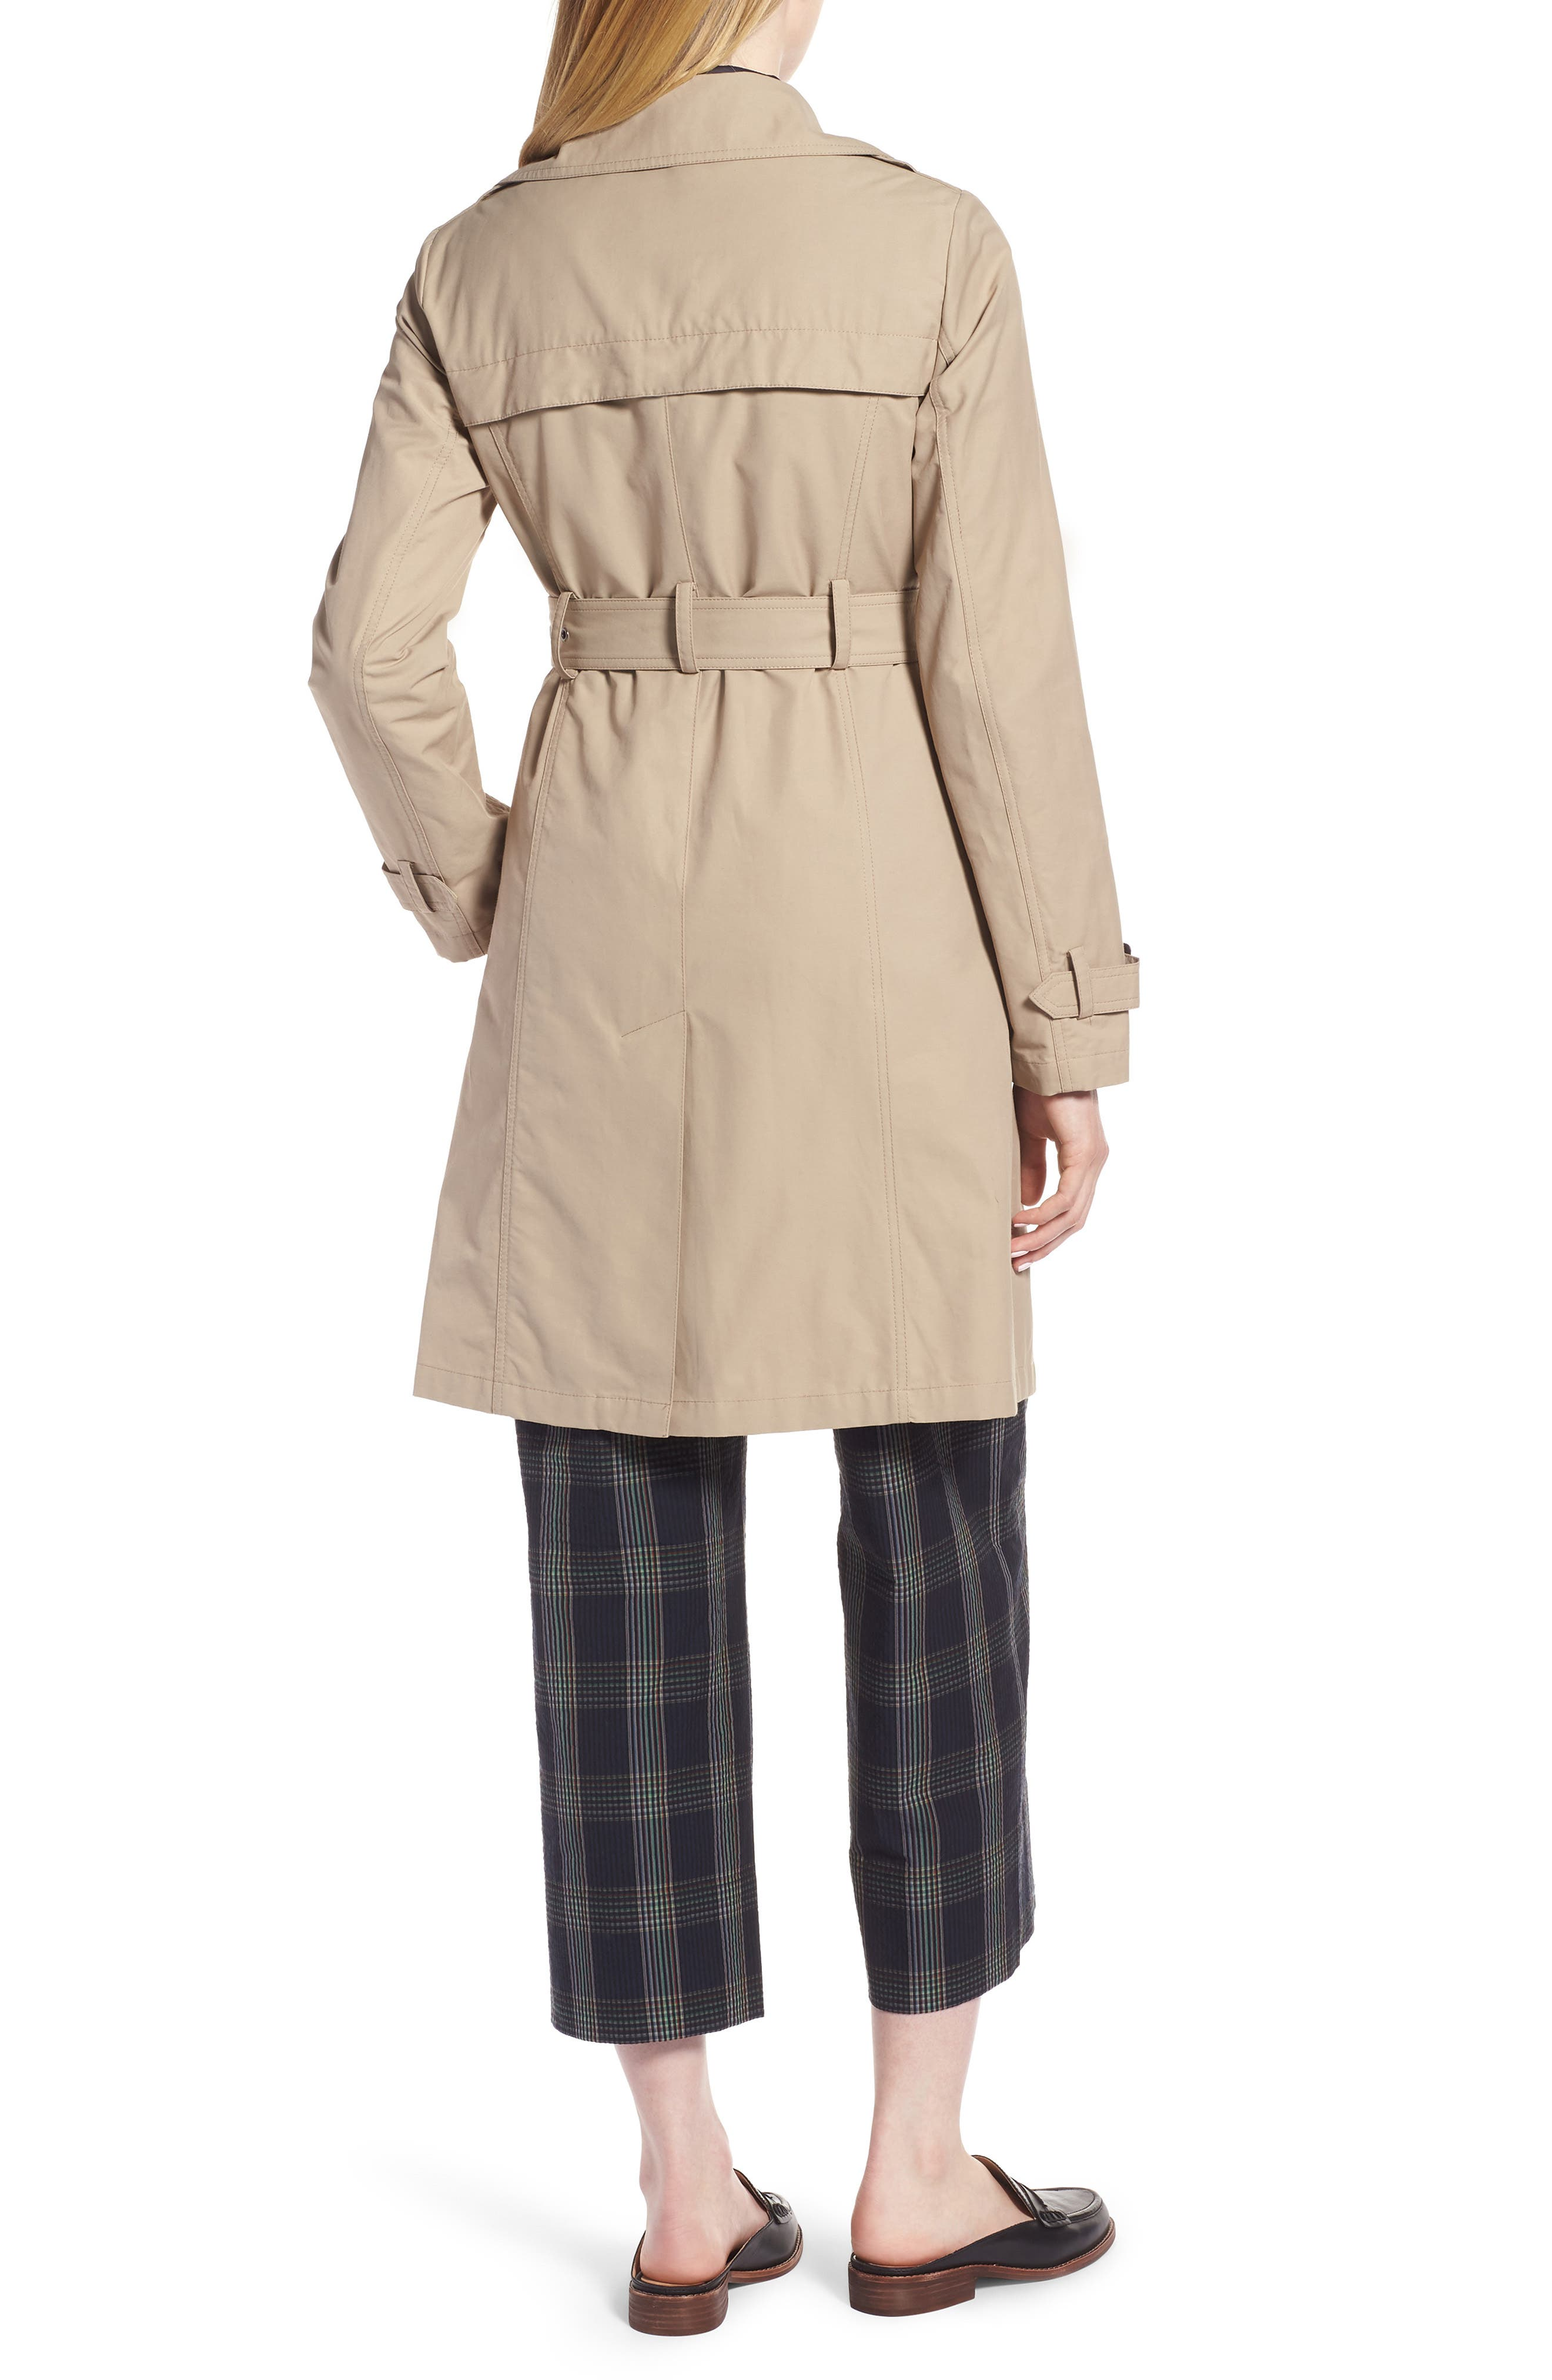 3-in-1 Trench Coat with Vest,                             Alternate thumbnail 3, color,                             299